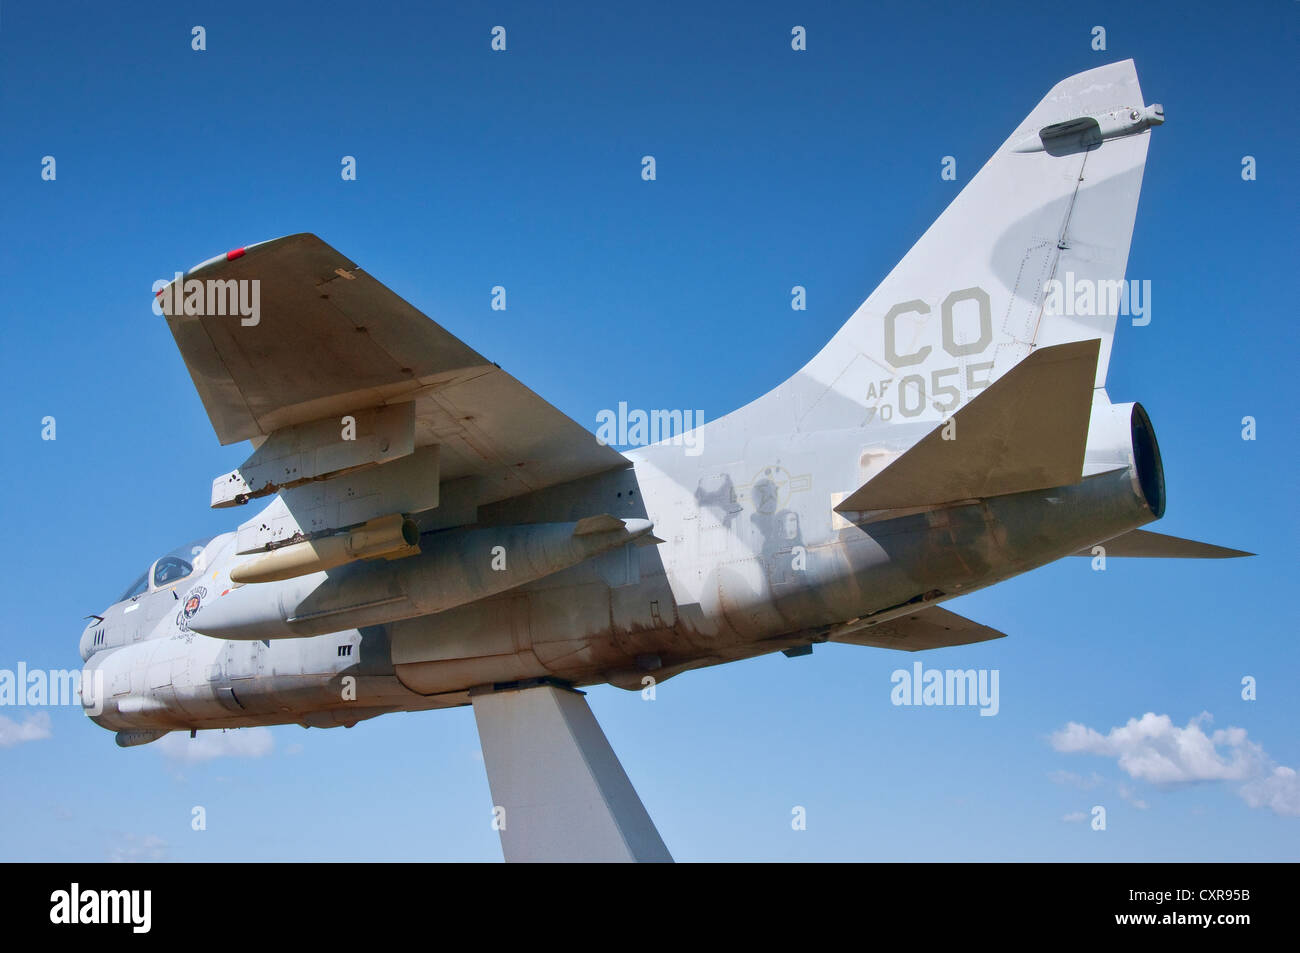 A-7D Corsair II light attack aircraft on display at Regional Airport in Montrose, Colorado - Stock Image